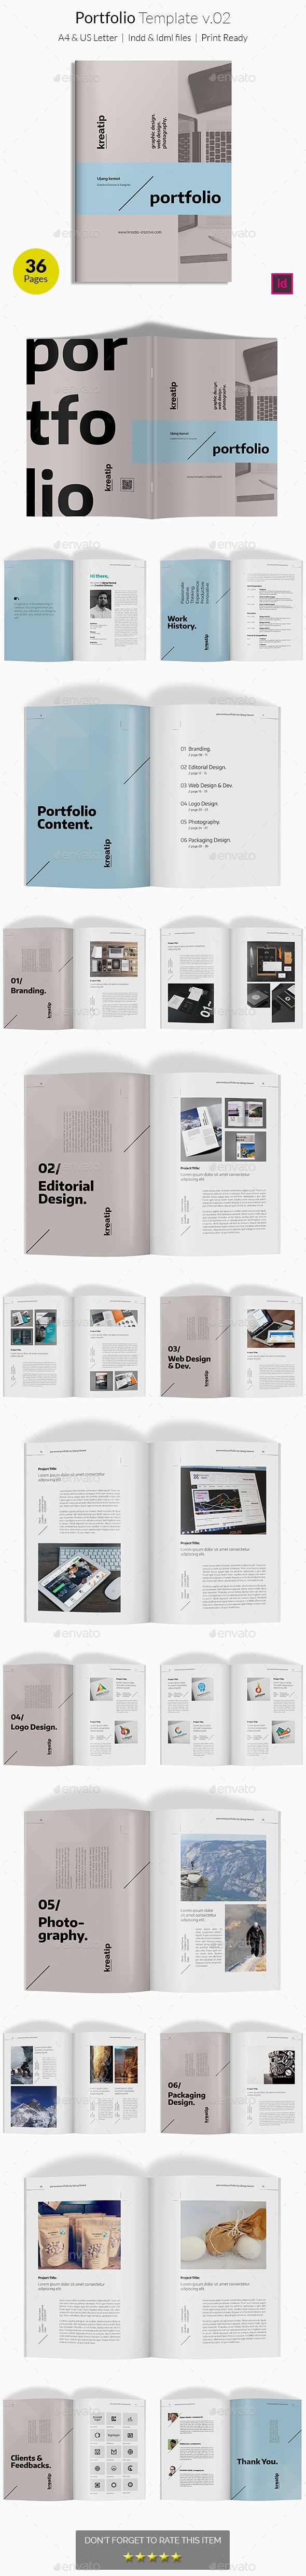 Portfolio Template V  Indesign Templates Brochures And Editorial